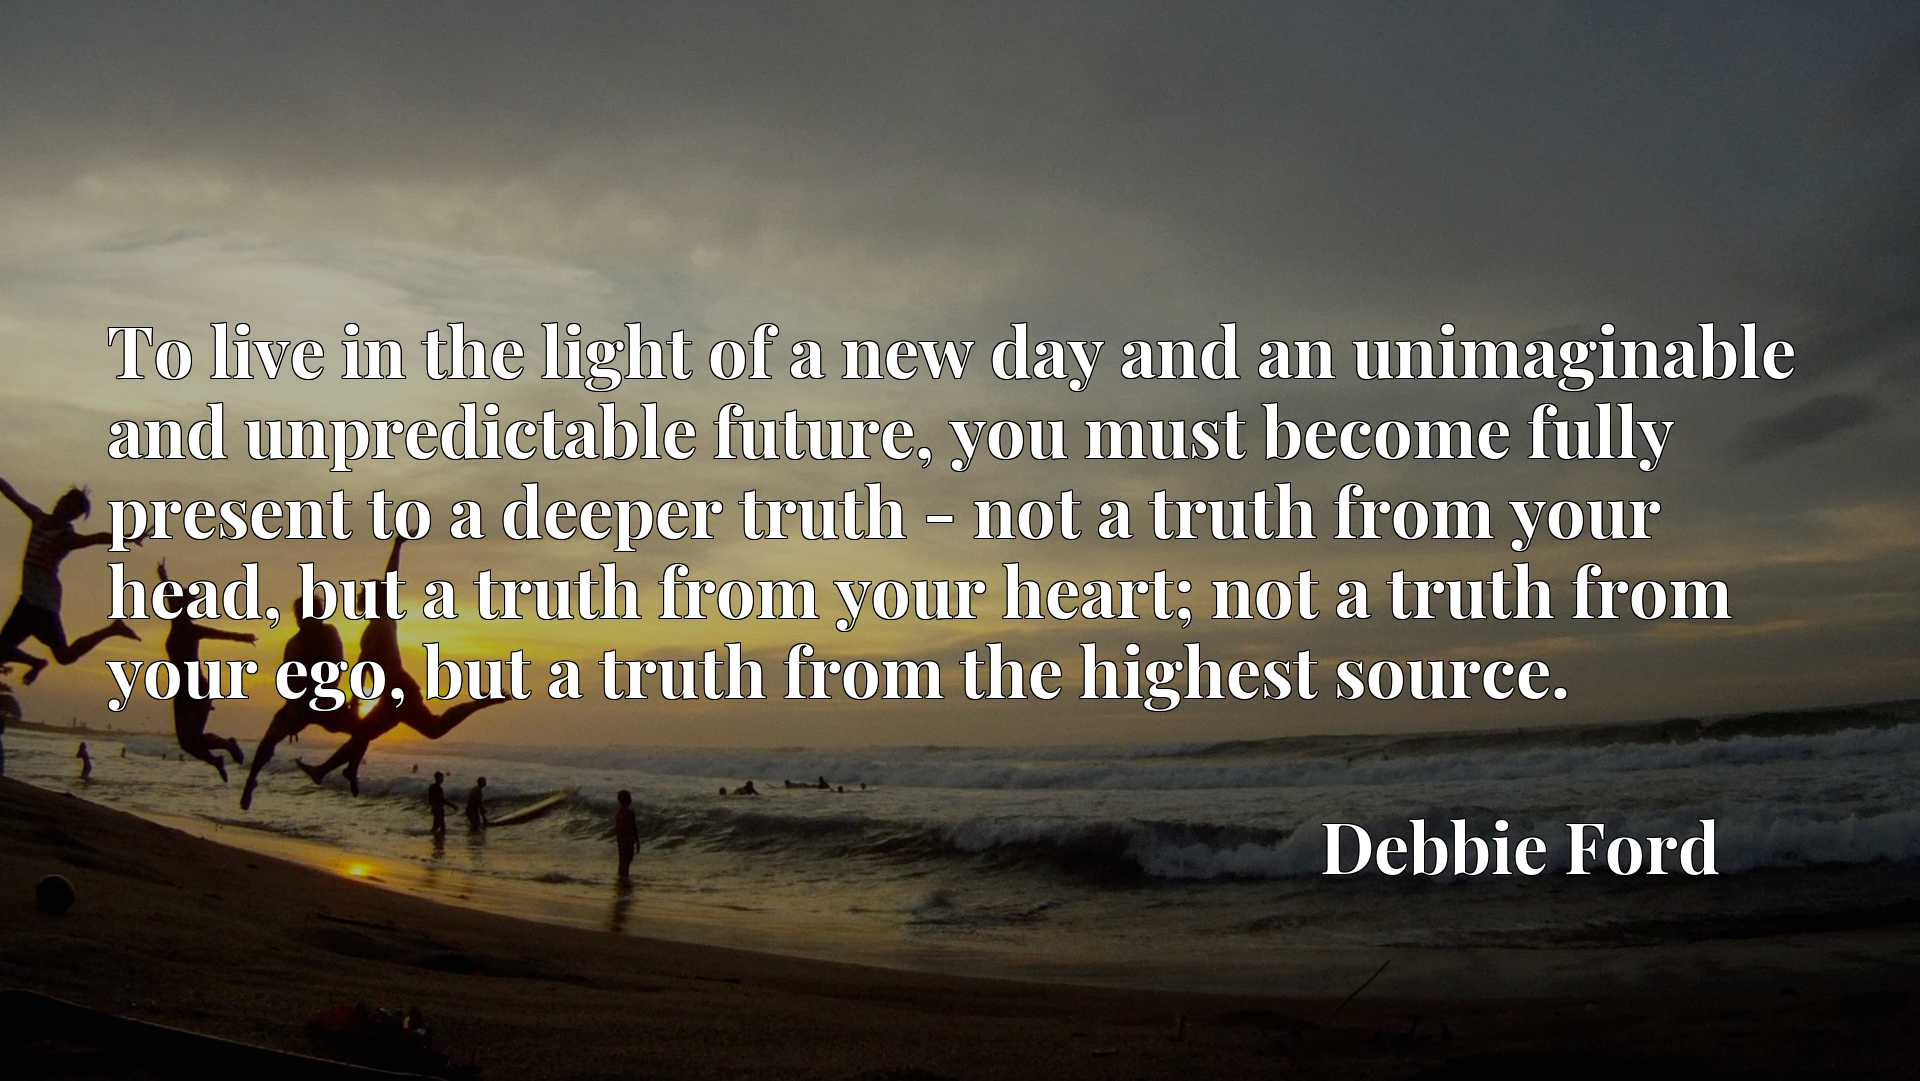 To live in the light of a new day and an unimaginable and unpredictable future, you must become fully present to a deeper truth - not a truth from your head, but a truth from your heart; not a truth from your ego, but a truth from the highest source.